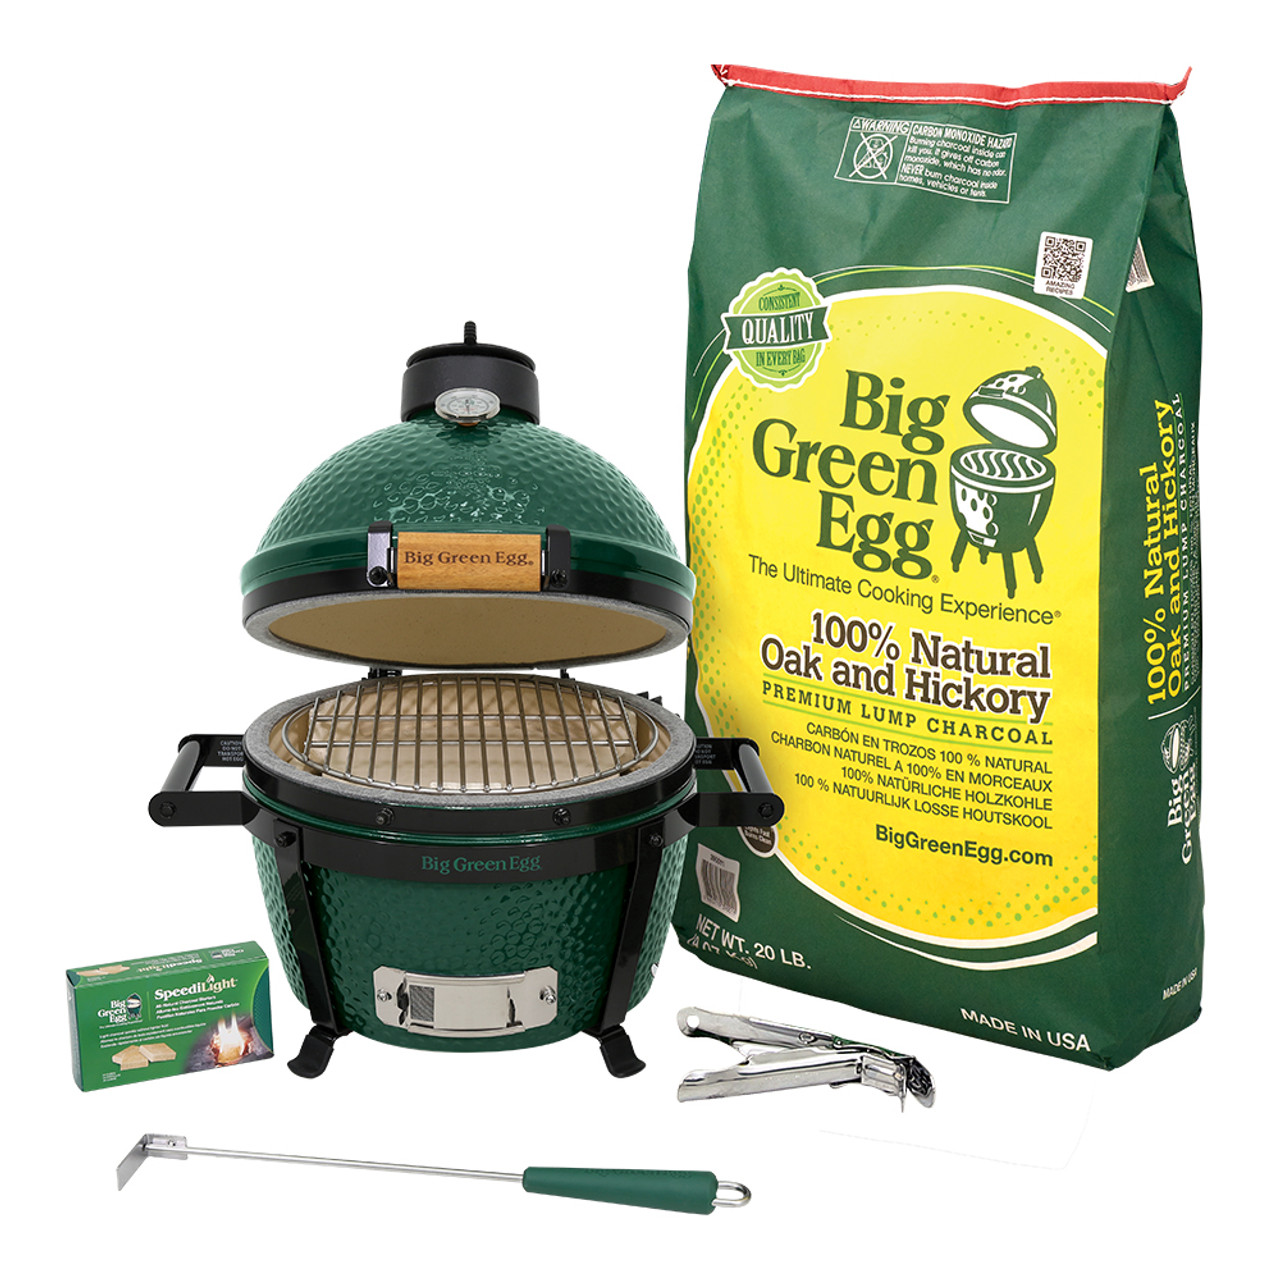 Big Green Egg MiniMax package with EGG, lump charcoal, ash tool, grid gripper, nest and charcoal starters